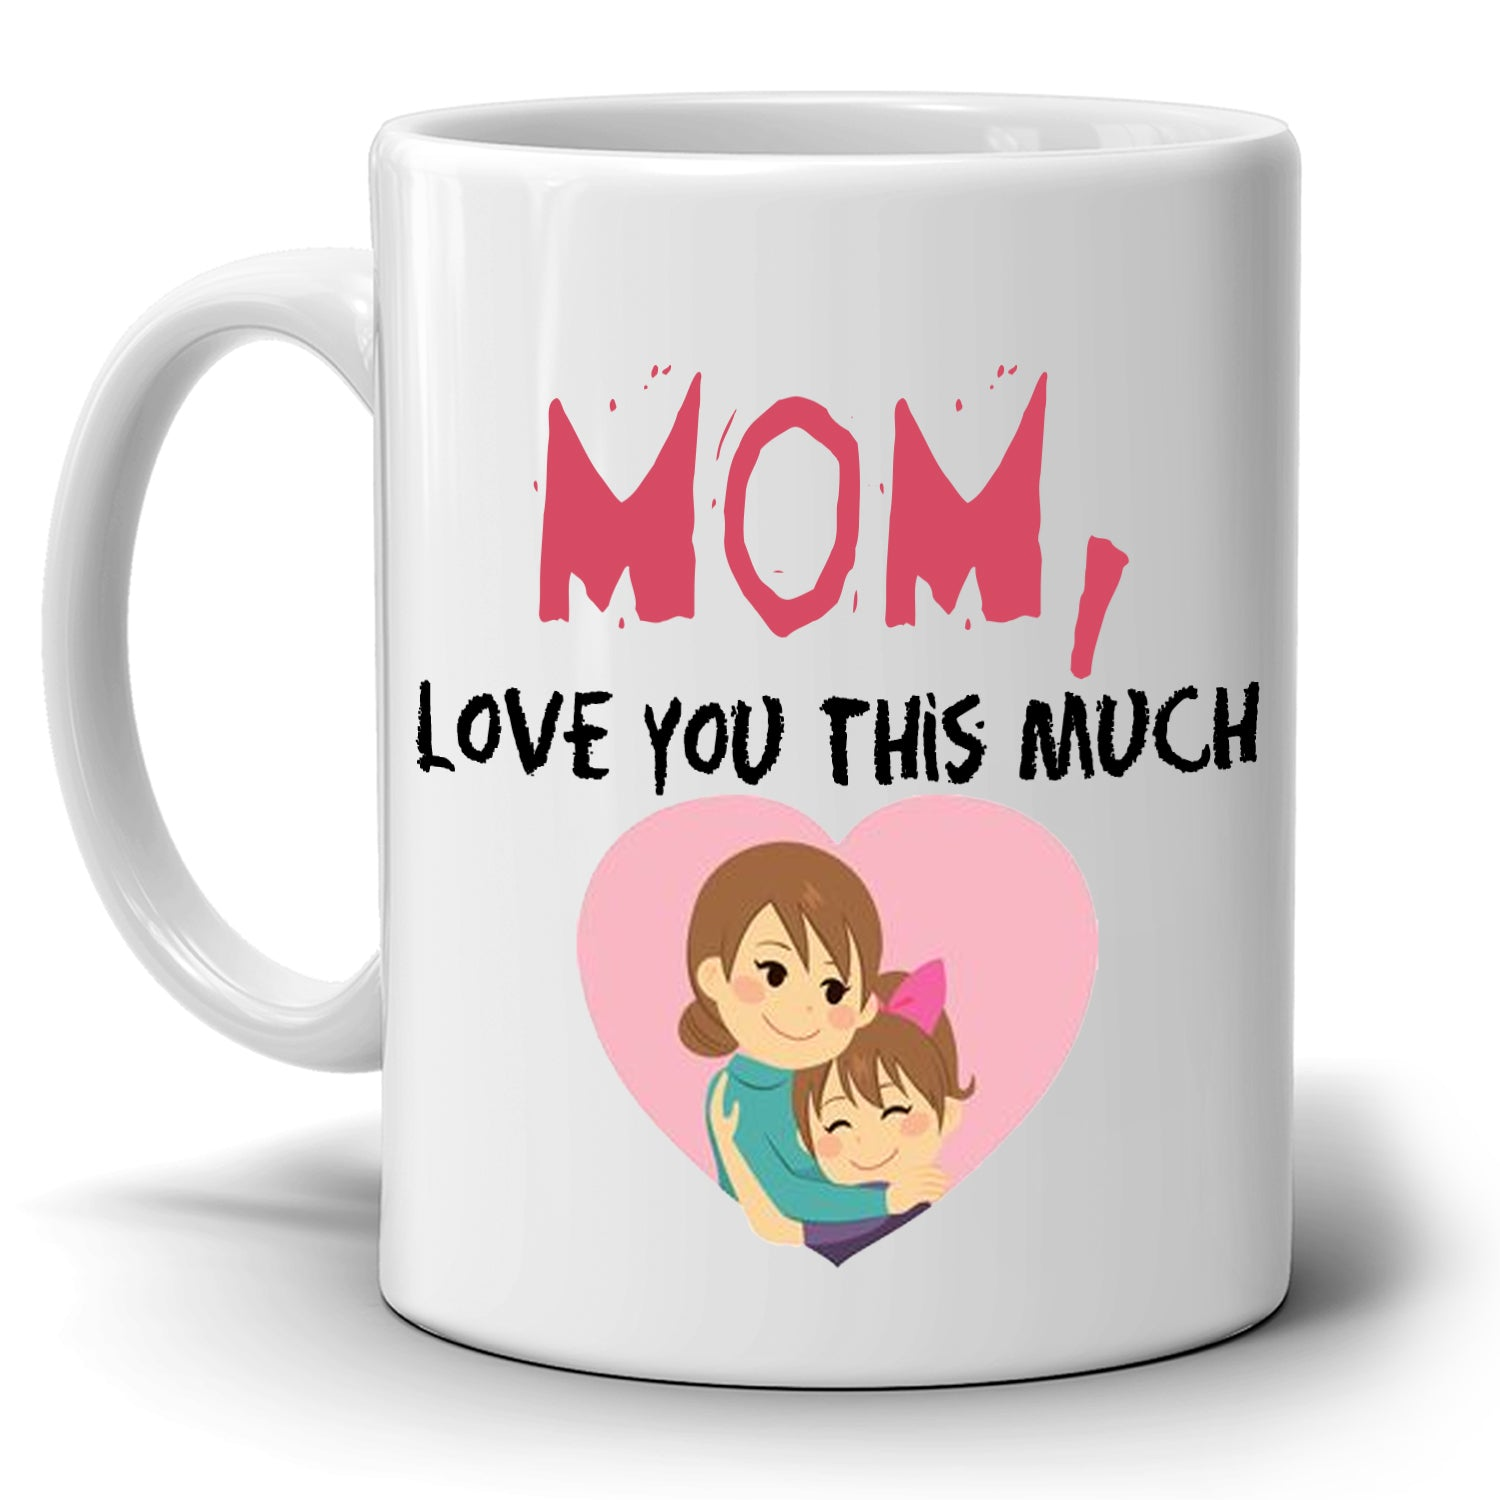 Cute Mothers Day Birthday Gifts Mug From Daughter Mom Love You This Much Coffee Cup